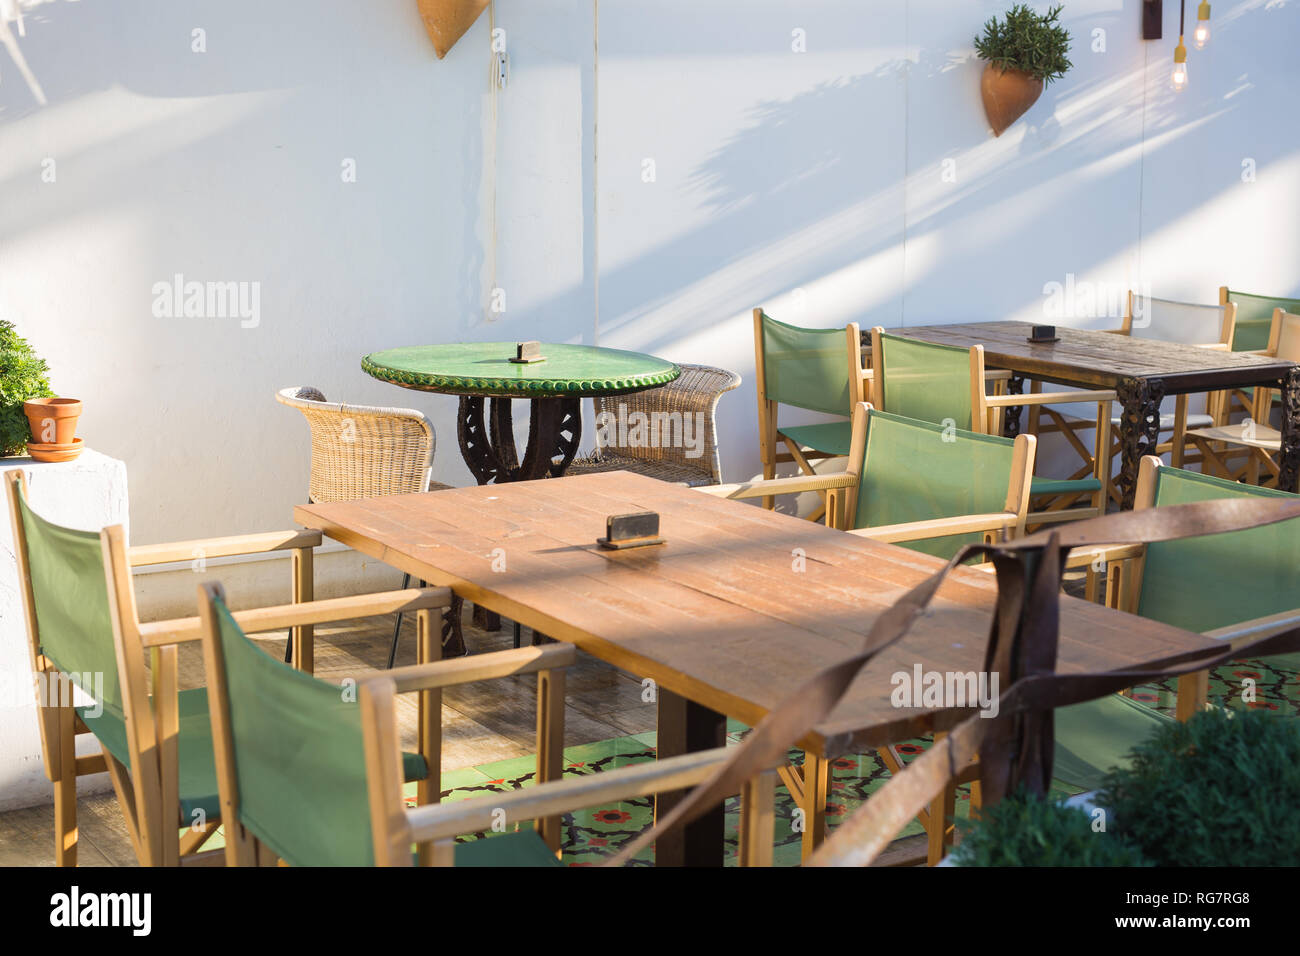 Cafe Coffee Shop Tavern And Restaurant Concept Cafe On The Street Of Old European City Stock Photo Alamy